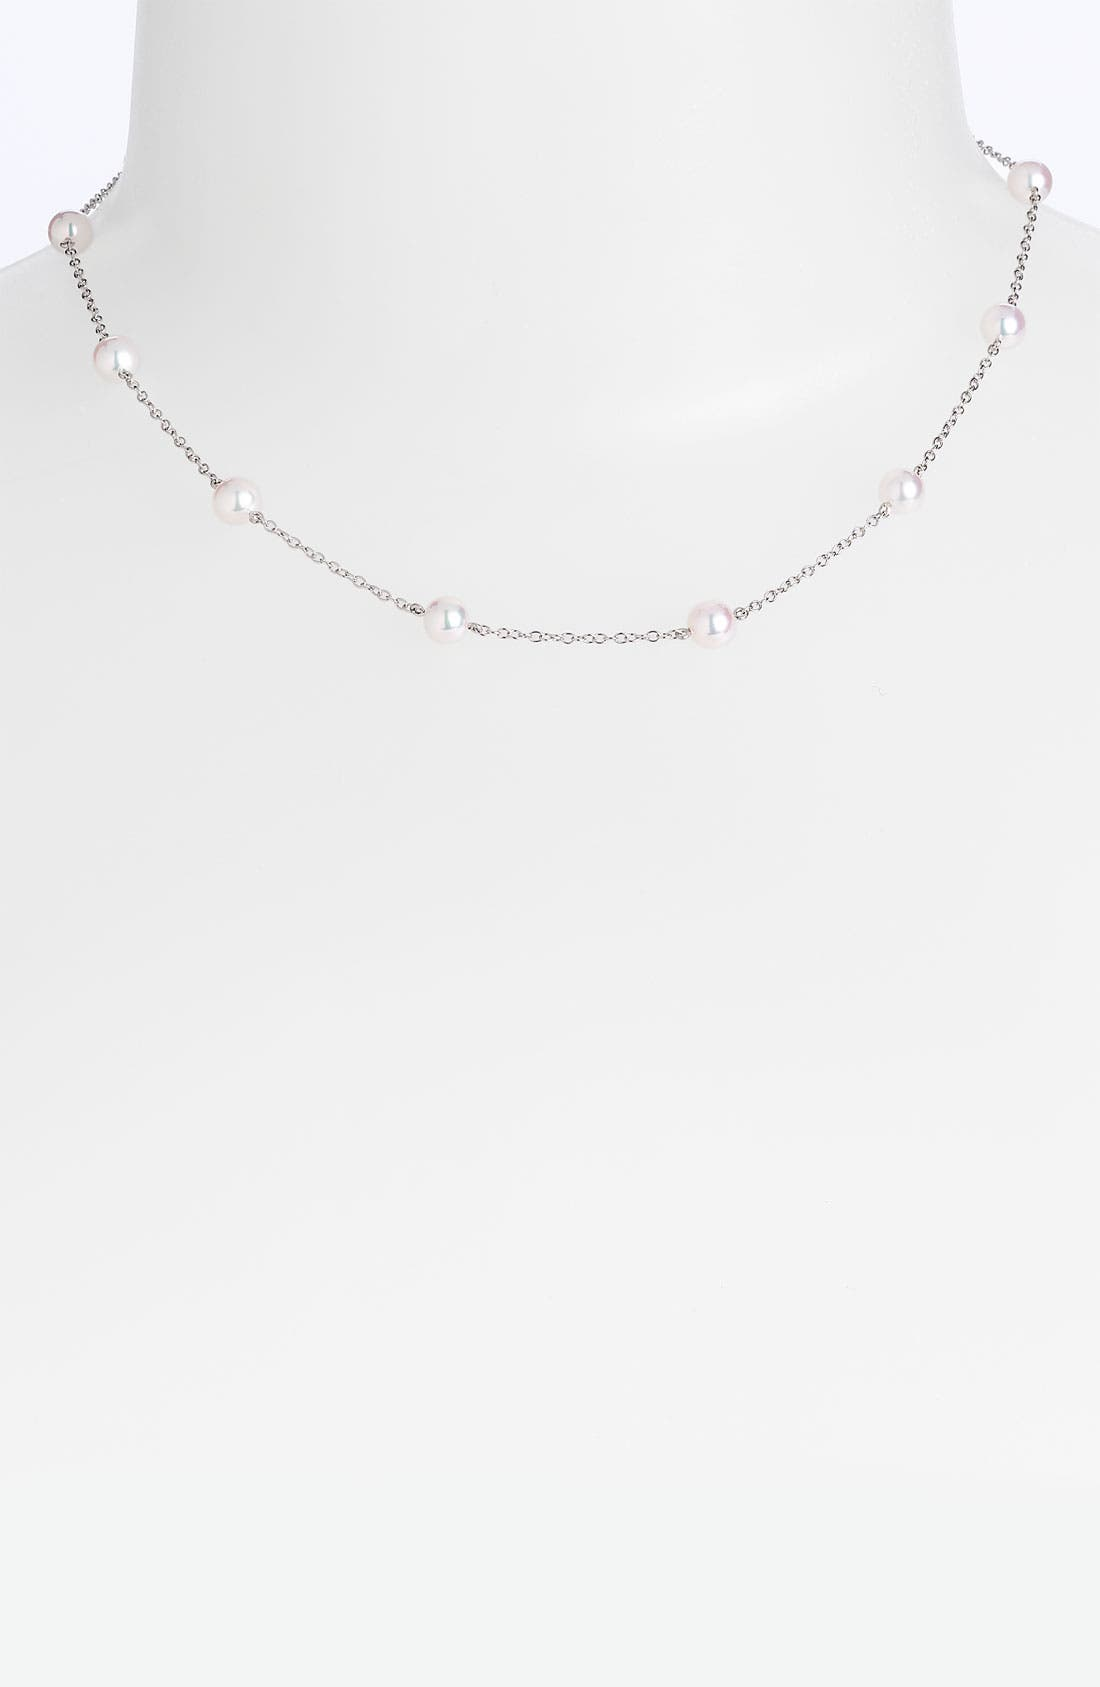 Alternate Image 1 Selected - Mikimoto Akoya Cultured Pearl & Chain Necklace